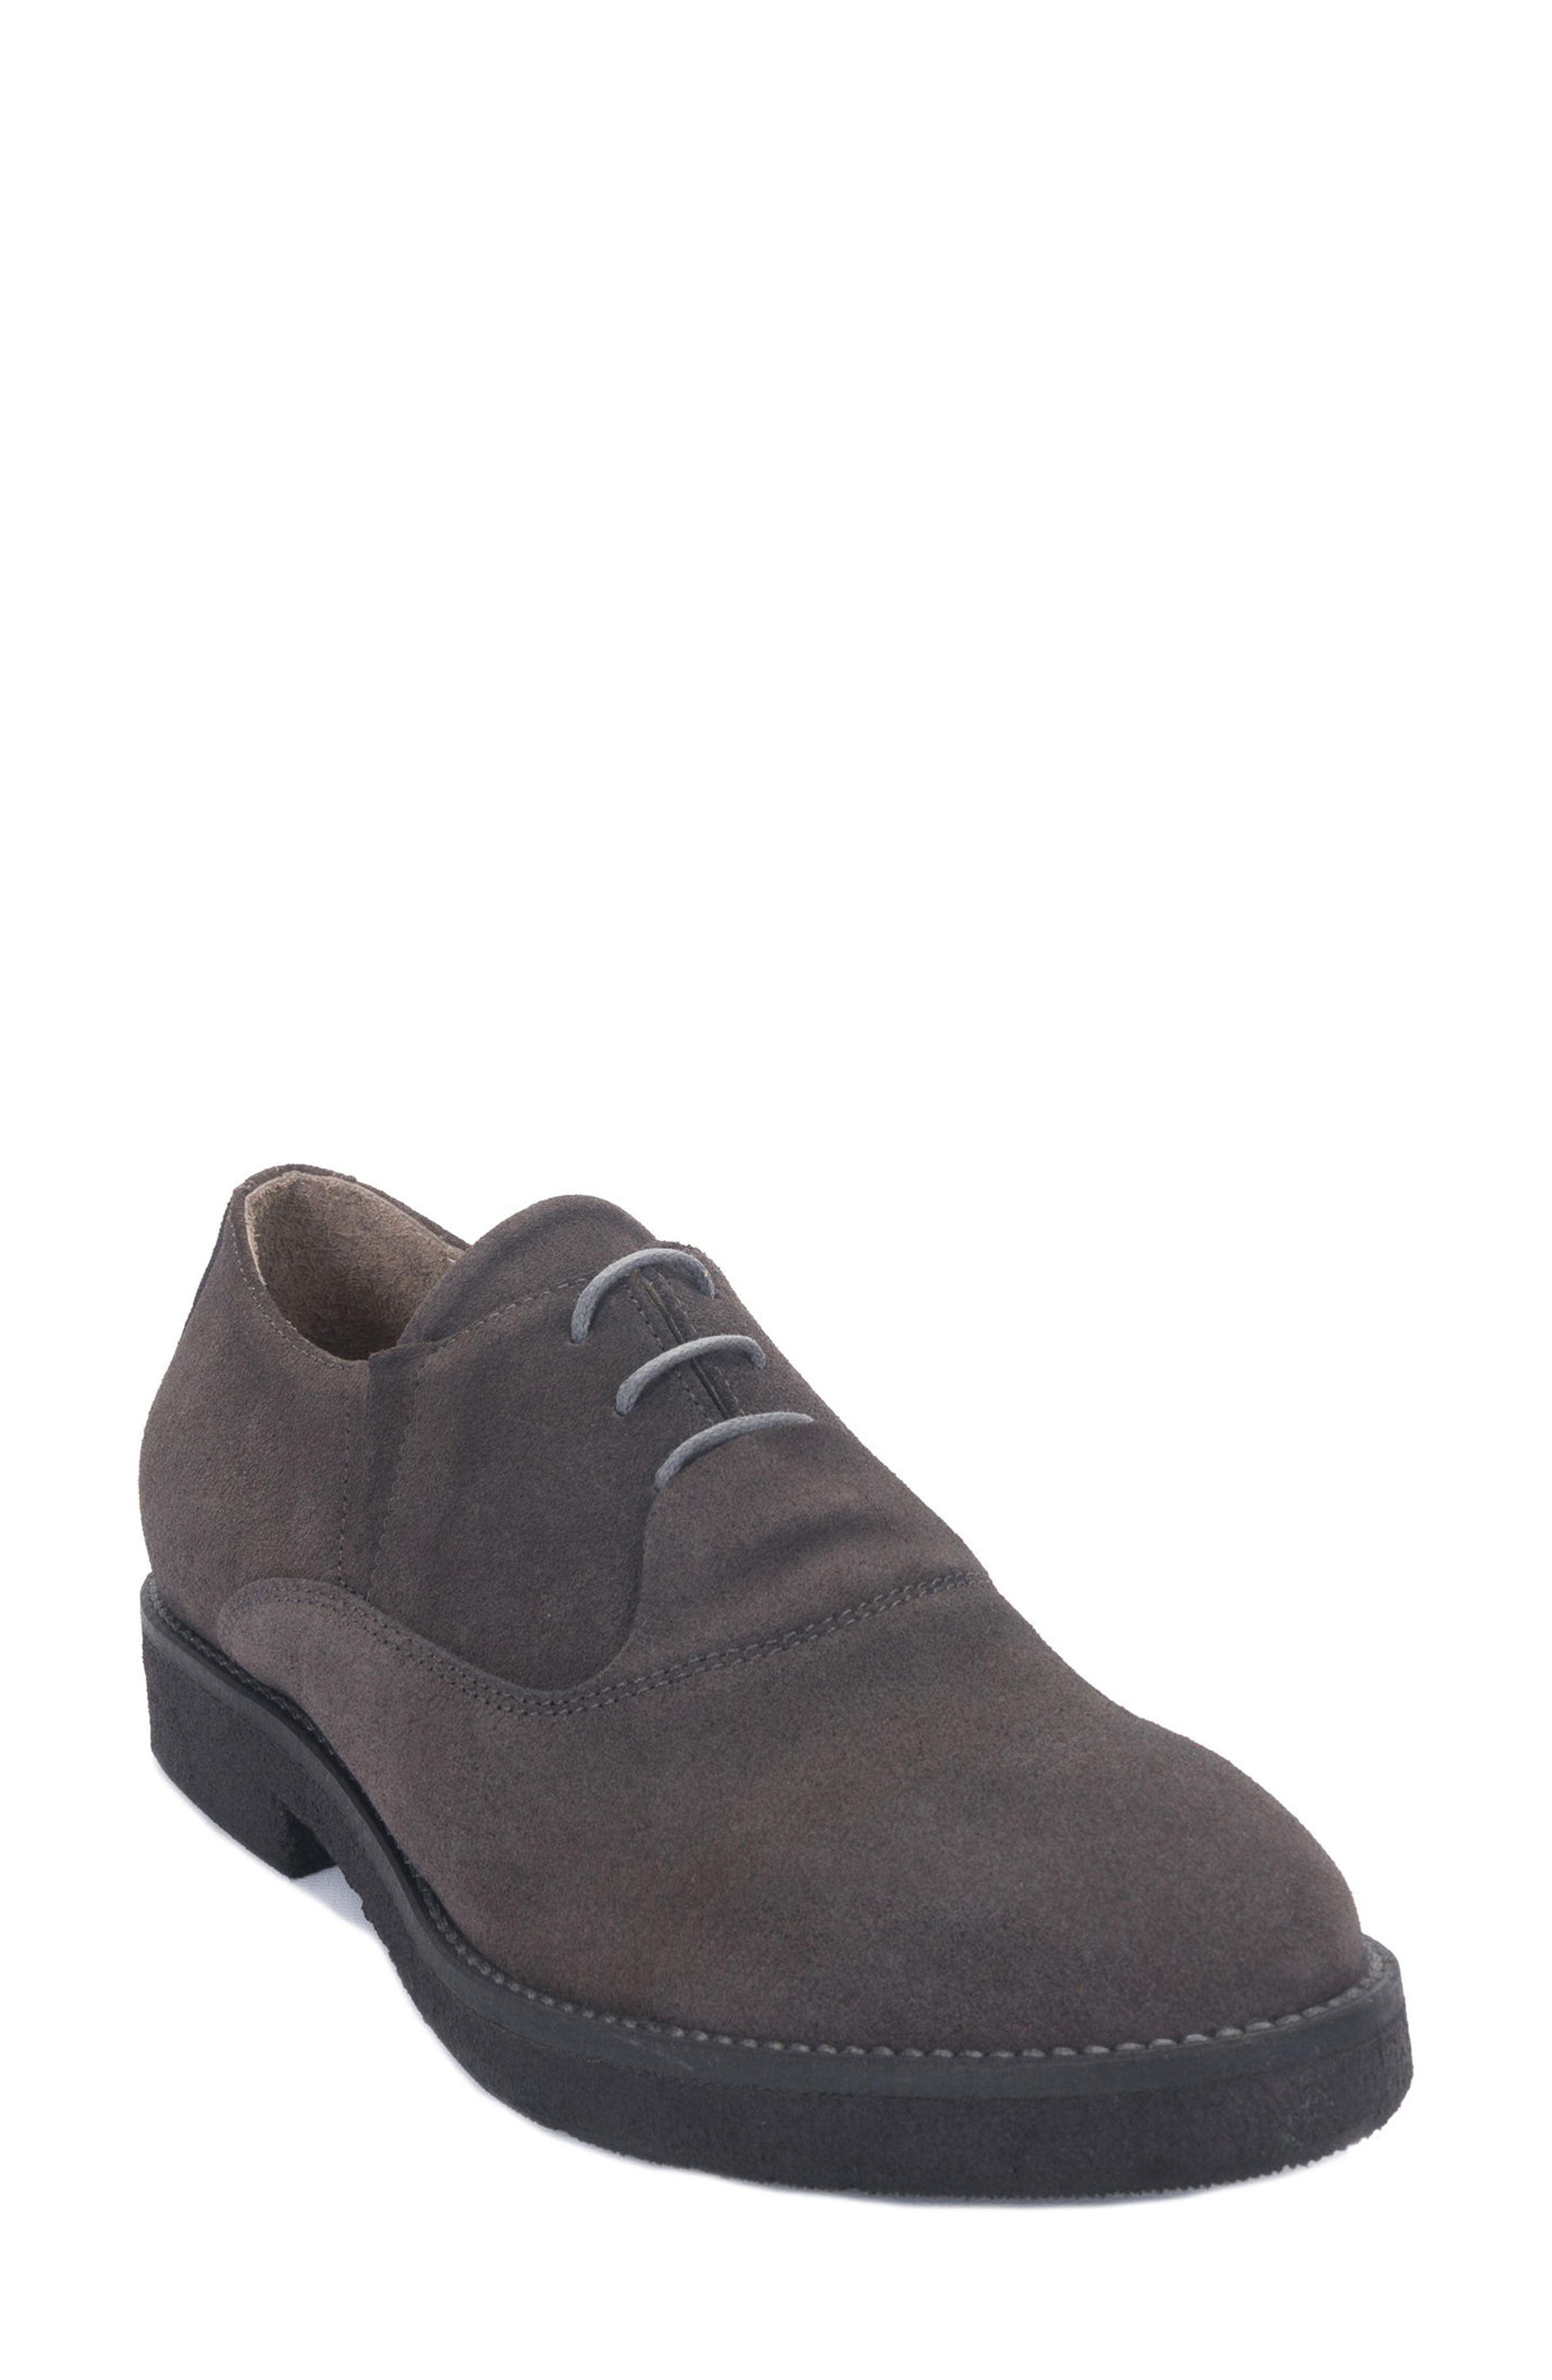 Molinella Water-Resistant Oxford,                         Main,                         color, 002